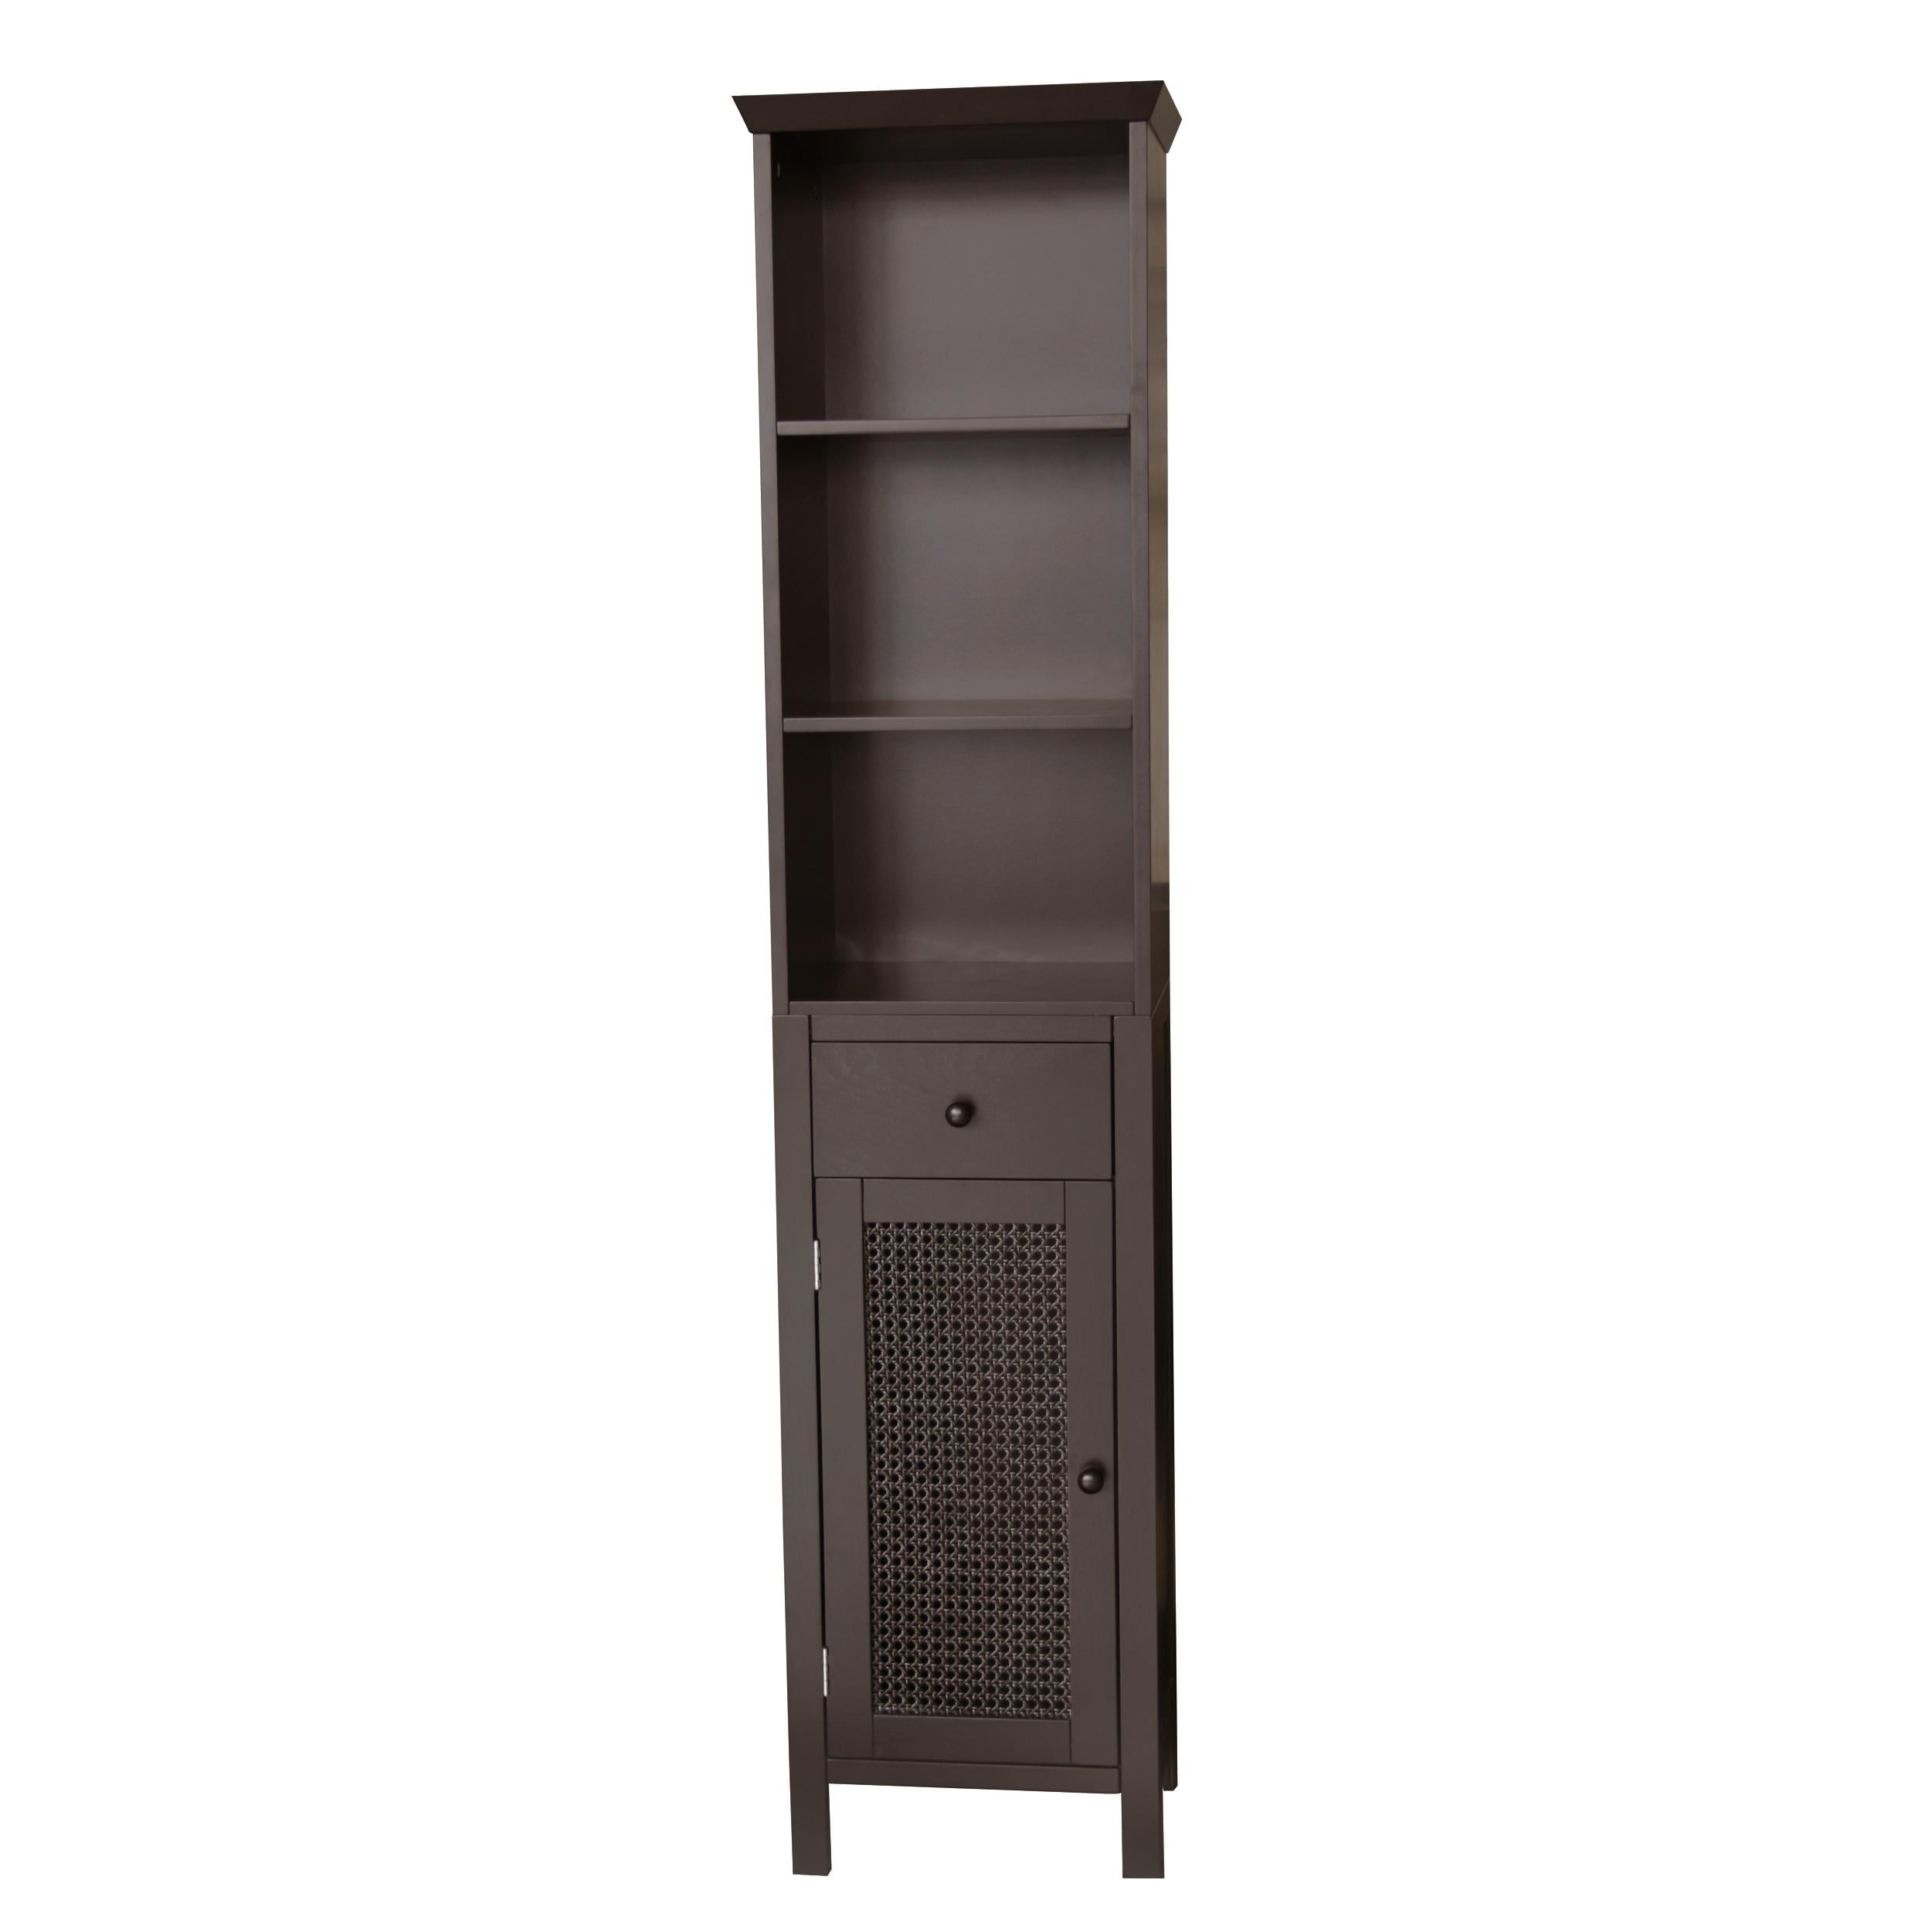 Jasper Dark Espresso Linen Organizer Cabinet by Essential Home Furnishings